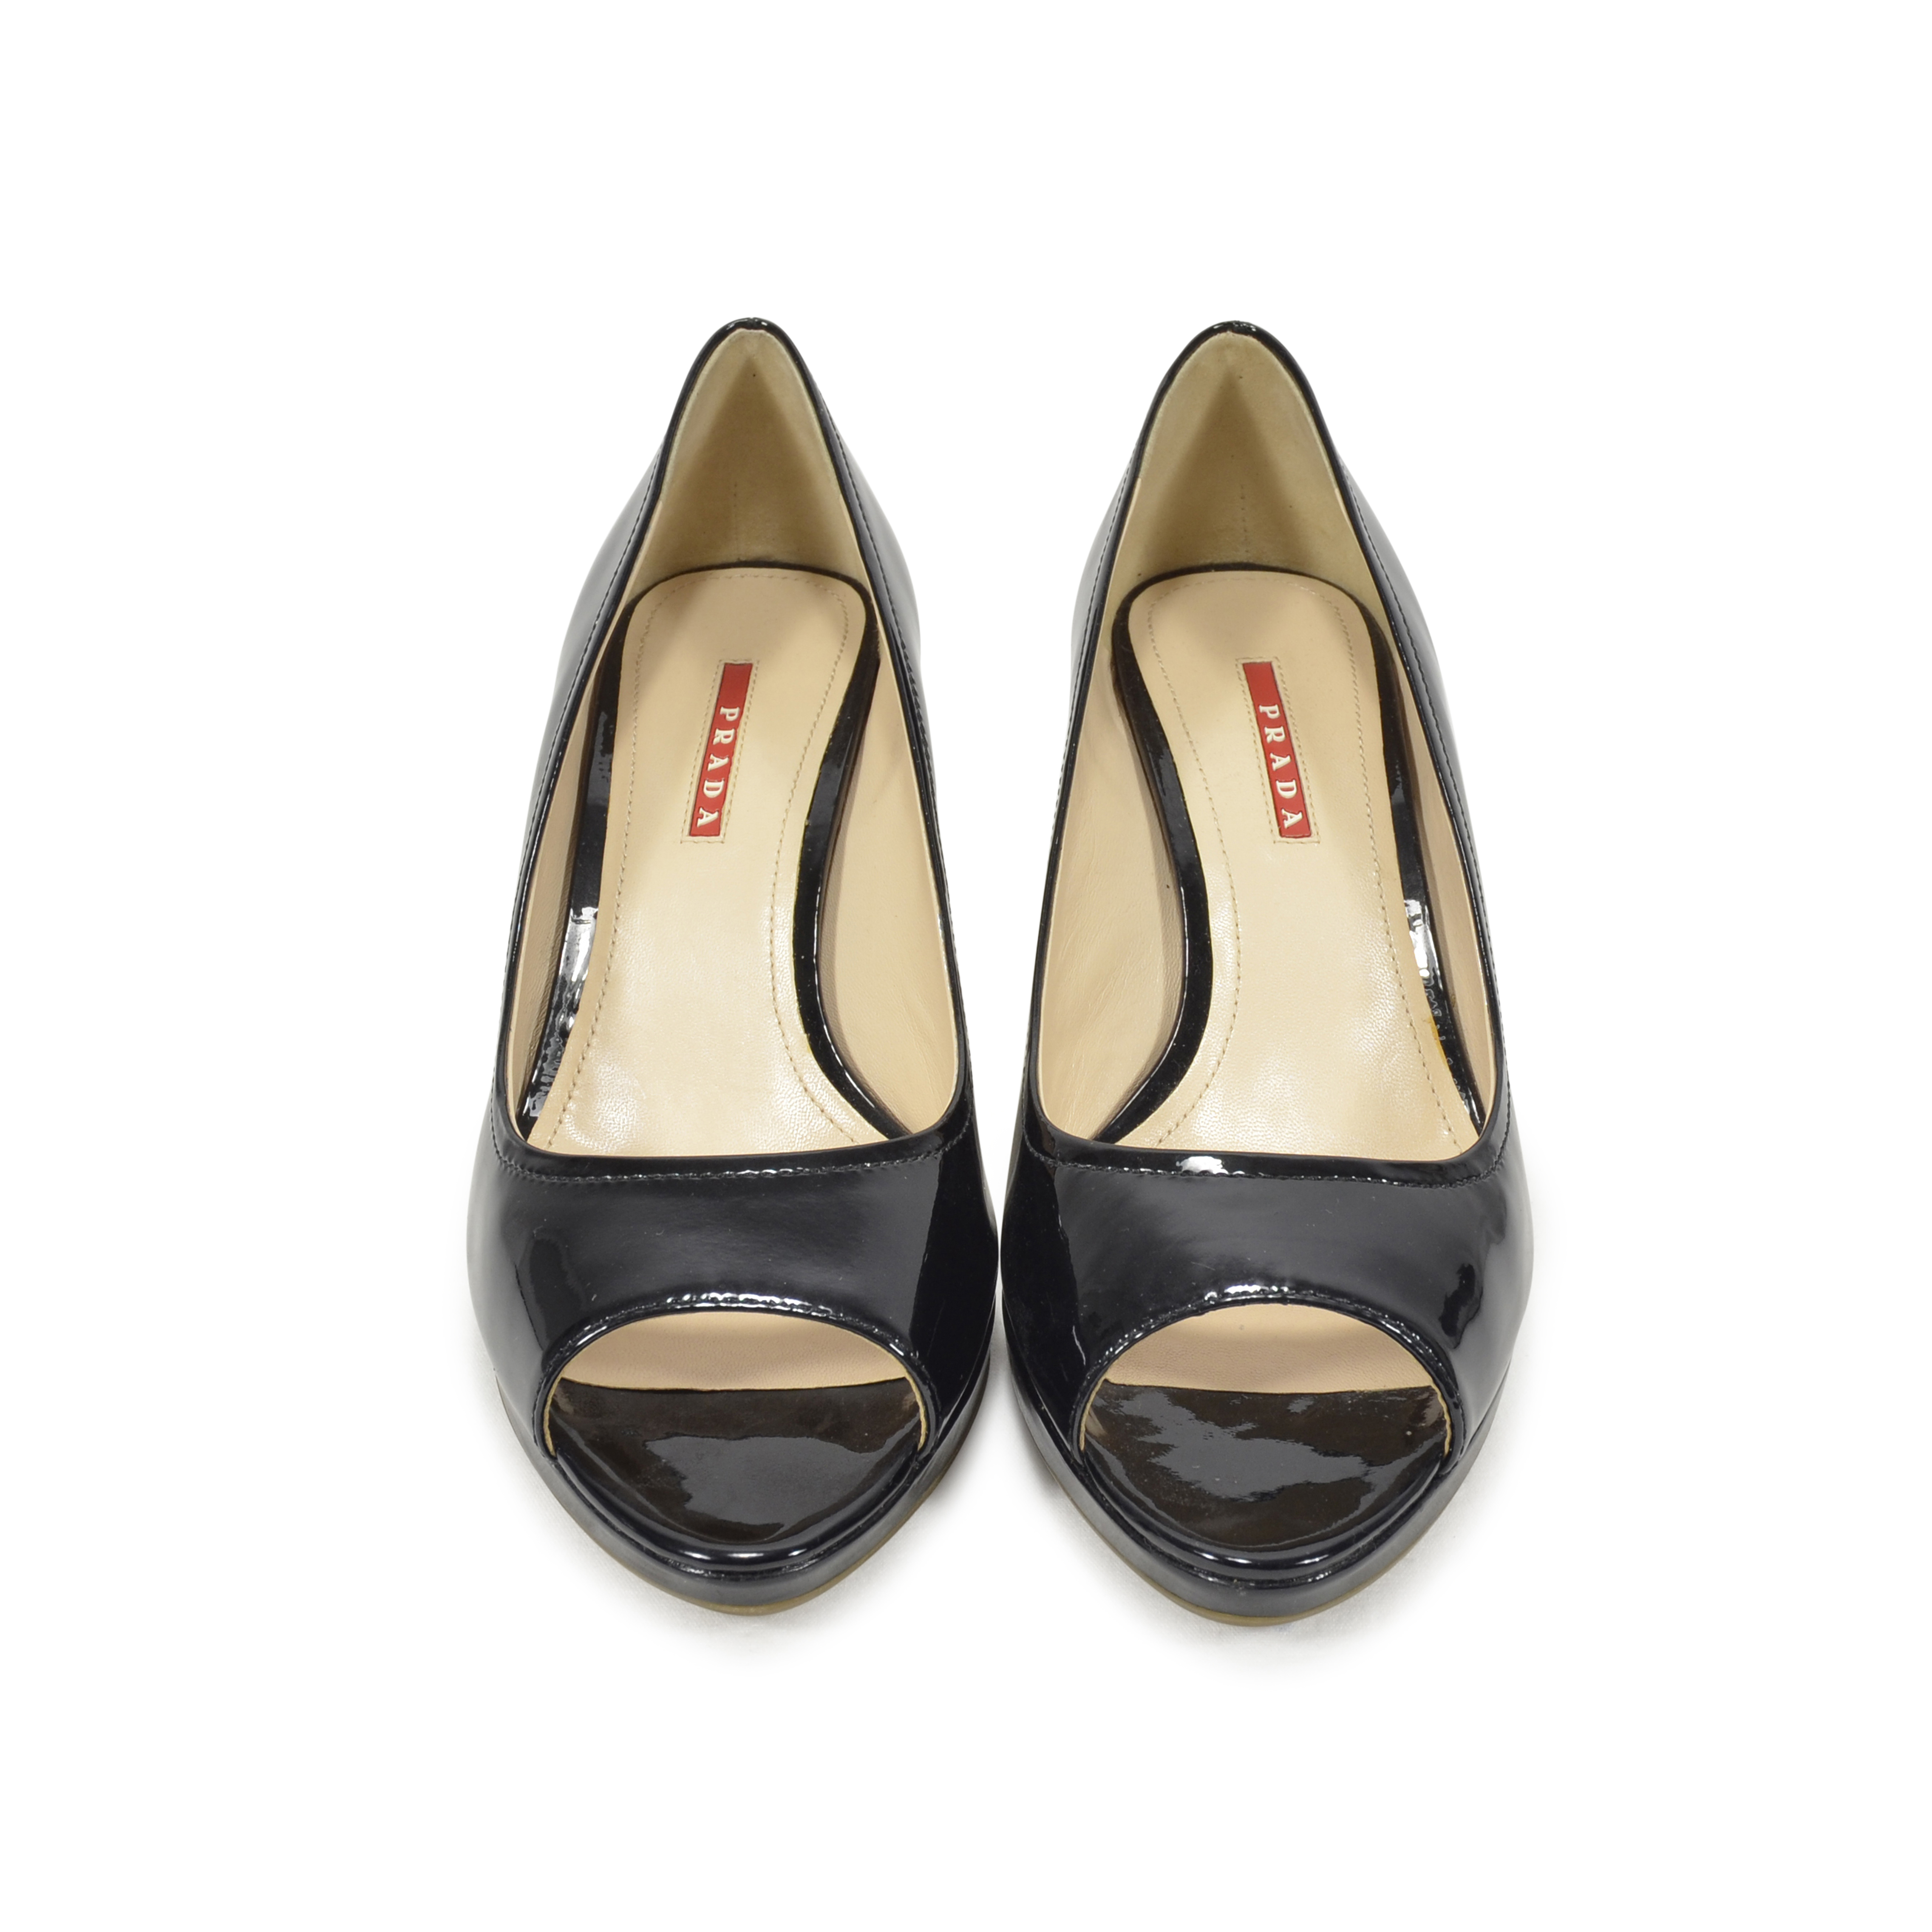 71e4e11c33978 Authentic Second Hand Prada Peep-Toe Wedge Pumps (PSS-350-00005) - THE  FIFTH COLLECTION